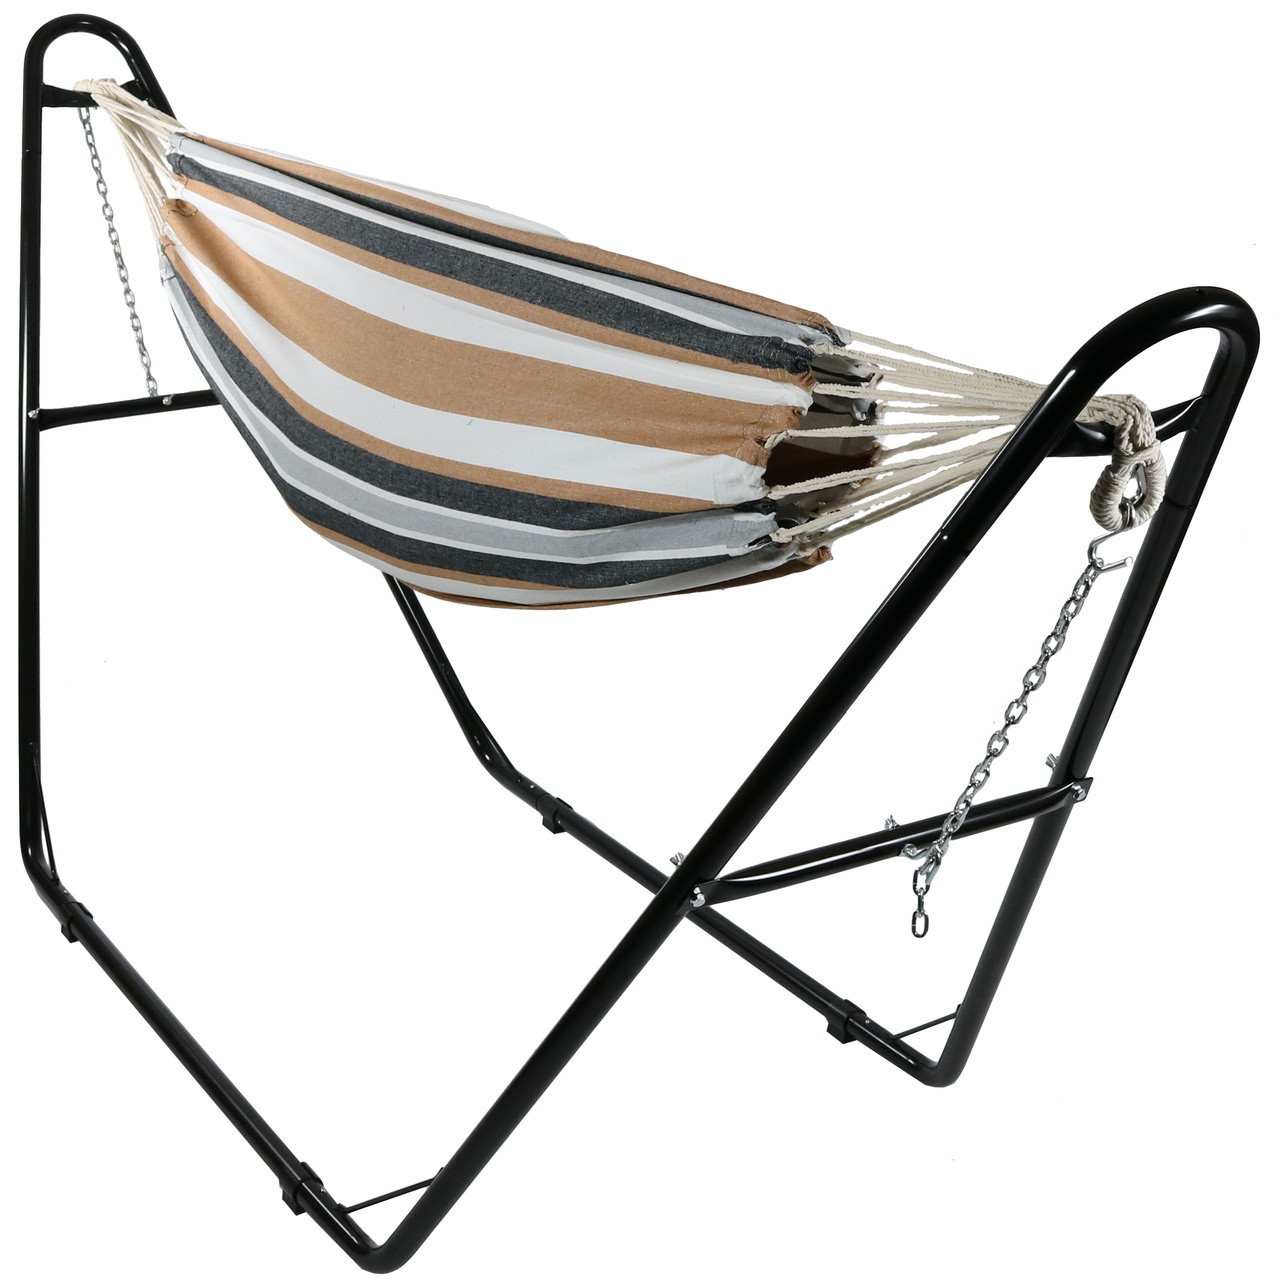 Sunnydaze Jumbo Brazilian Double Hammock with Universal Multi-Use Stand, Extra Long, Large 2 Person, Portable Hammock Bed, with Carrying Pouch, Max Weight: 450 Pounds, Choose Color